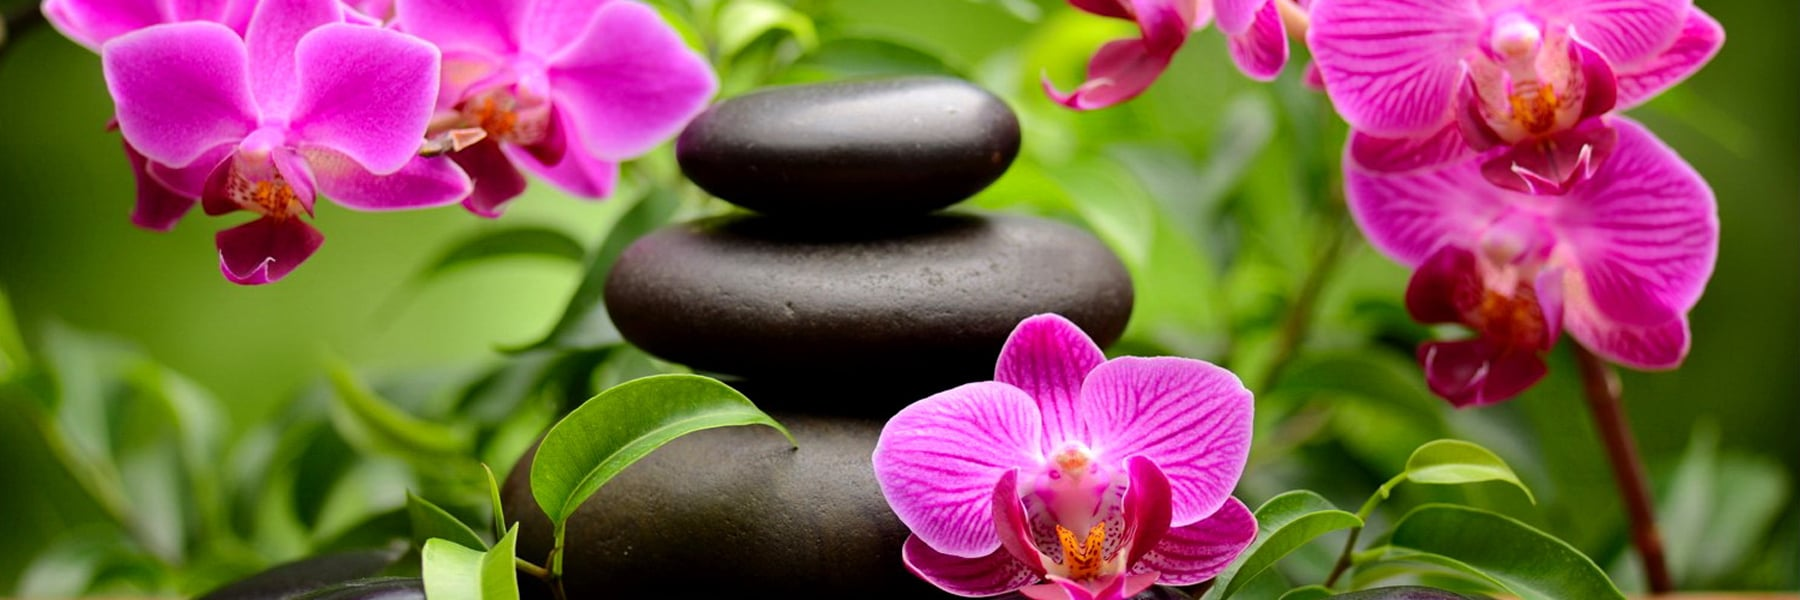 Stack of smooth stones surrounded by pink flowers